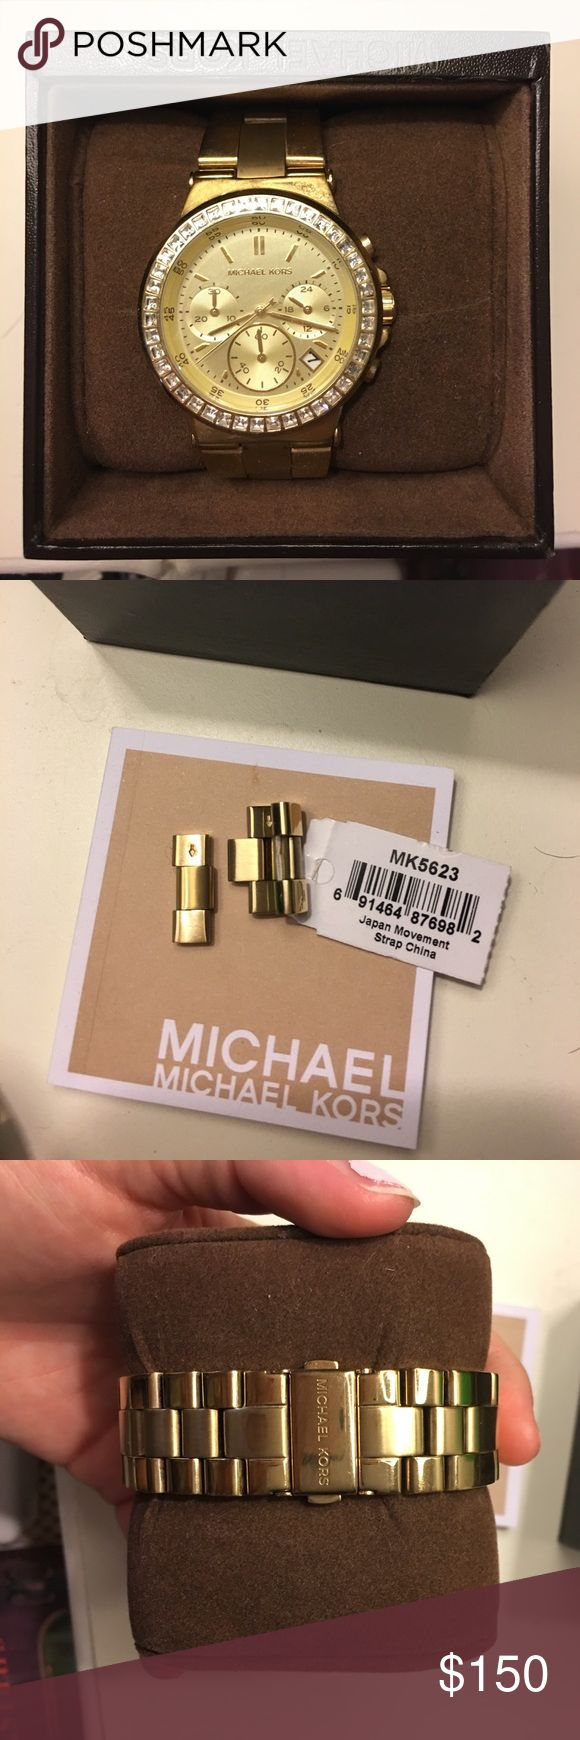 Gold Michael Kors Watch Selling Gold Michael Kors Watch! In great condition. Comes with extra links and original box/instruction pamphlet. The Watch needs a new battery*** but other than that, it's like brand new. Accessories Watches